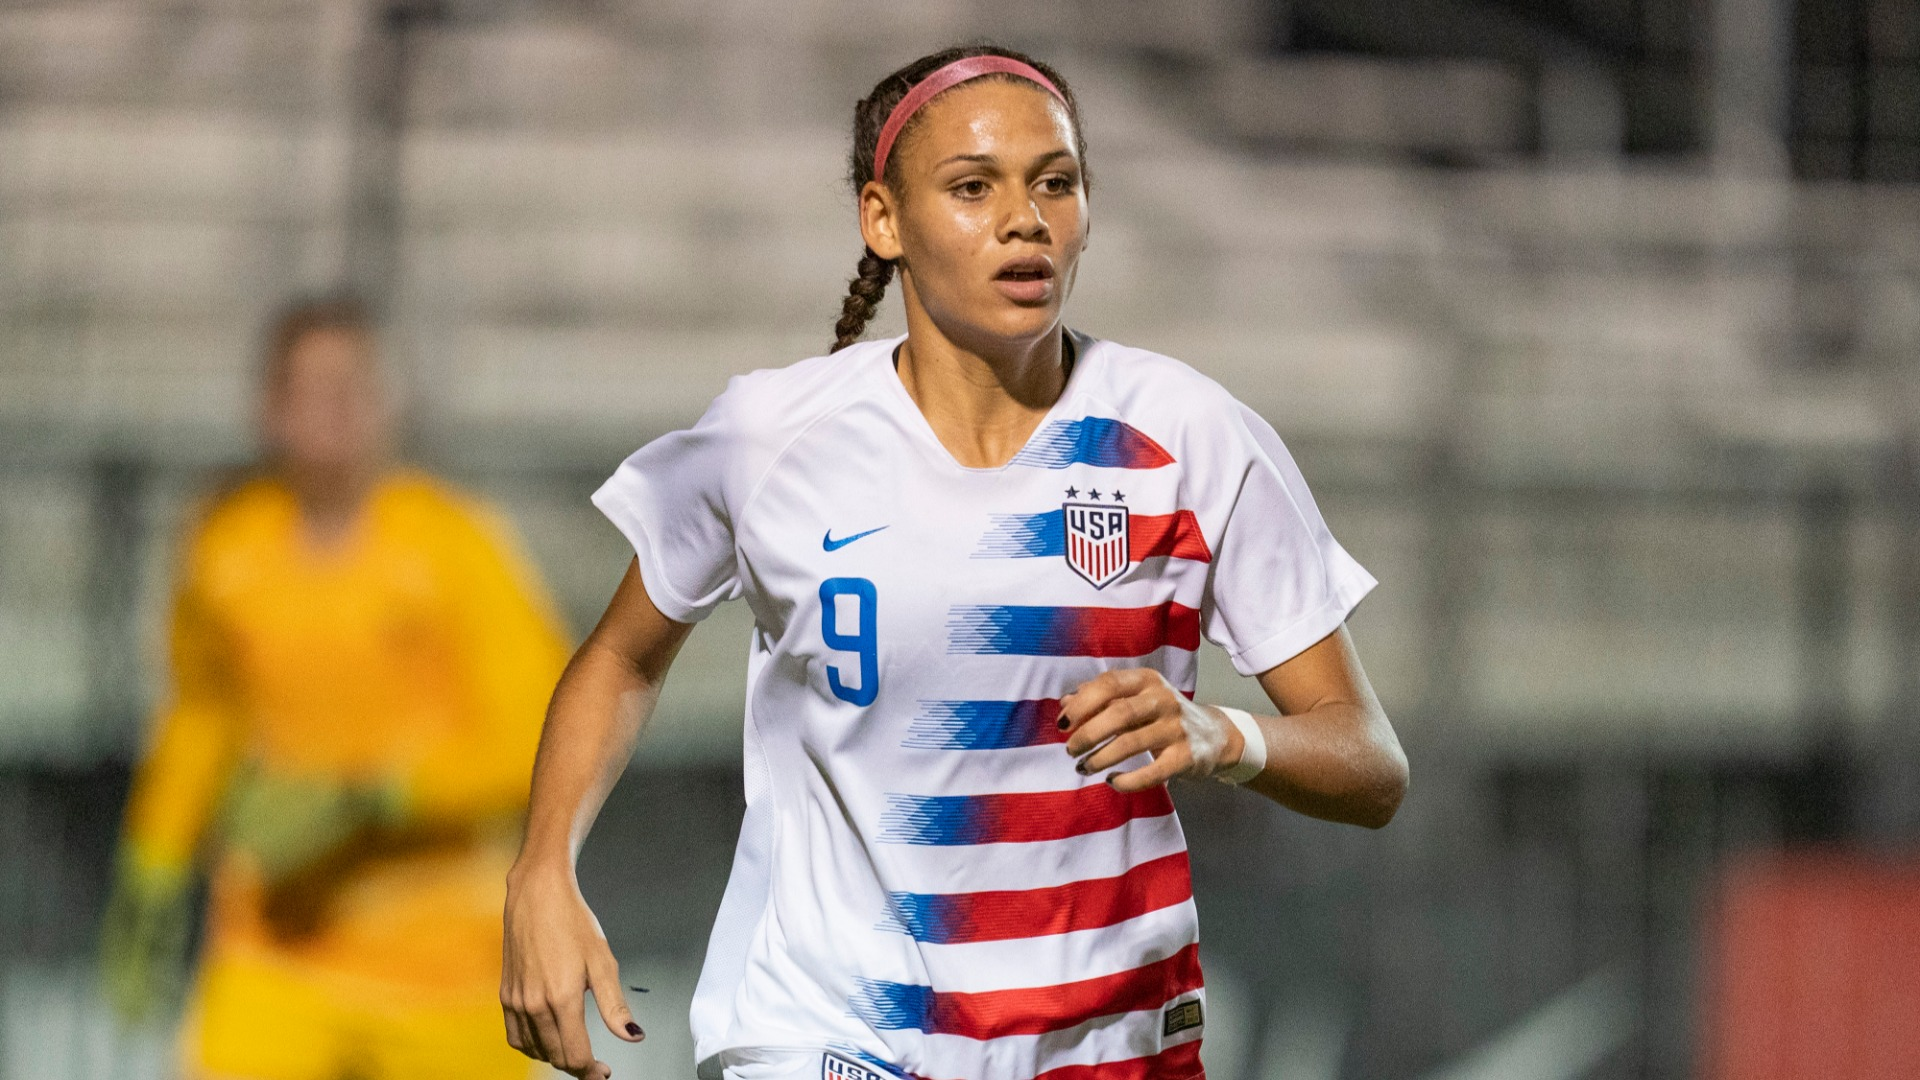 Dennis Rodman's daughter Trinity 'excited to pave my own path' after going second in NWSL draft